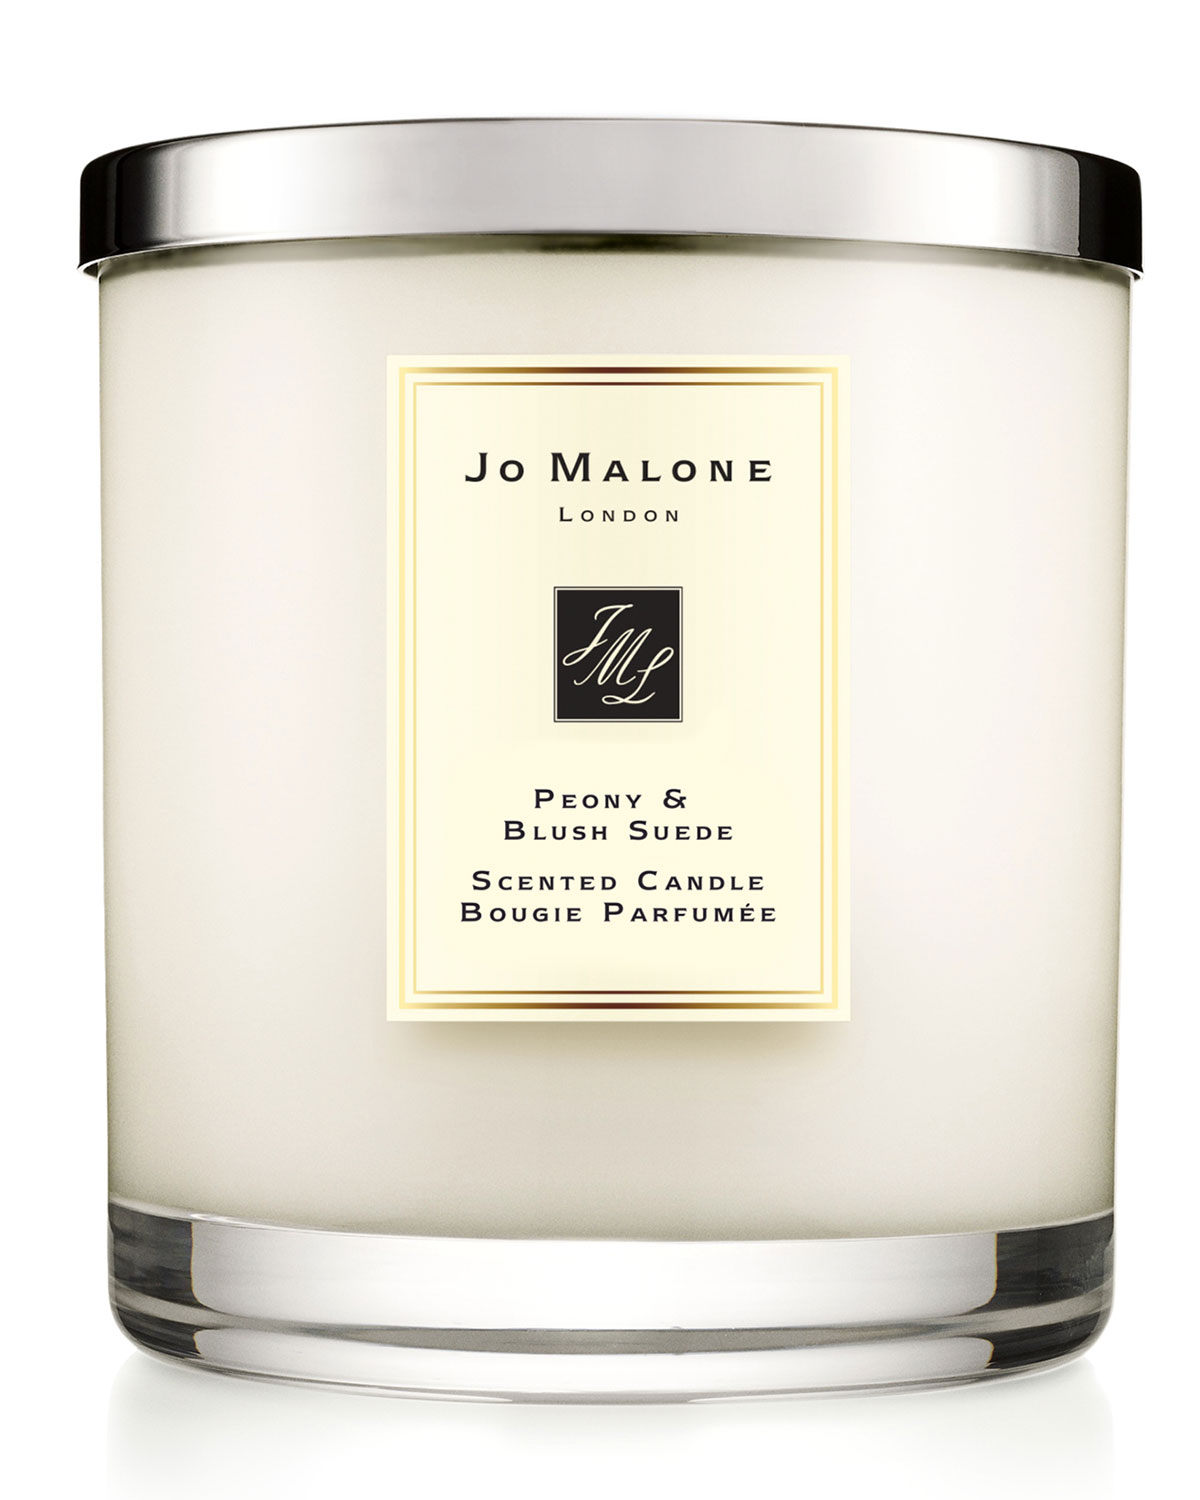 Jo Malone London Peony & Blush Suede Luxury Candle